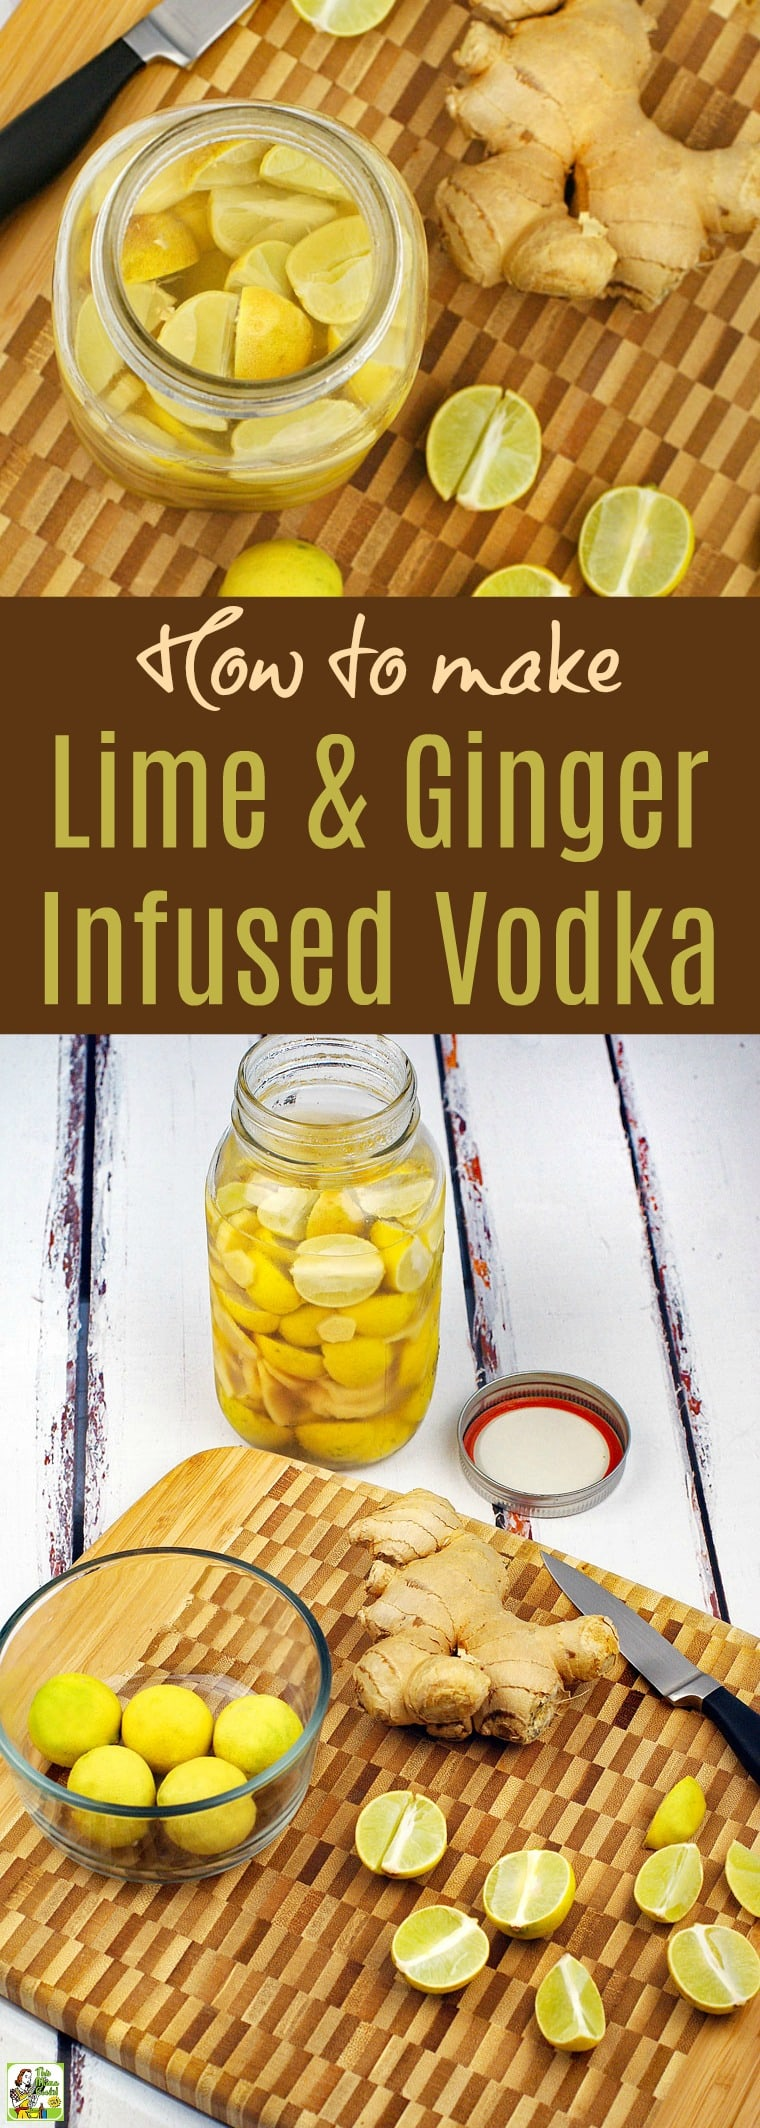 Looking for infused vodka recipes? Learn how to make Lime & Ginger Infused Vodka. This homemade infused vodka recipe includes tips for making infused vodka into gifts. Also, includes ideas for infused vodka cocktail recipes. #recipe #easy #recipeoftheday #healthyrecipes #glutenfree #easyrecipes #lime #ginger #cocktails #cocktail #drinks #drinking #vodka #alcohol #homemade #homemadegifts #infusedvodka